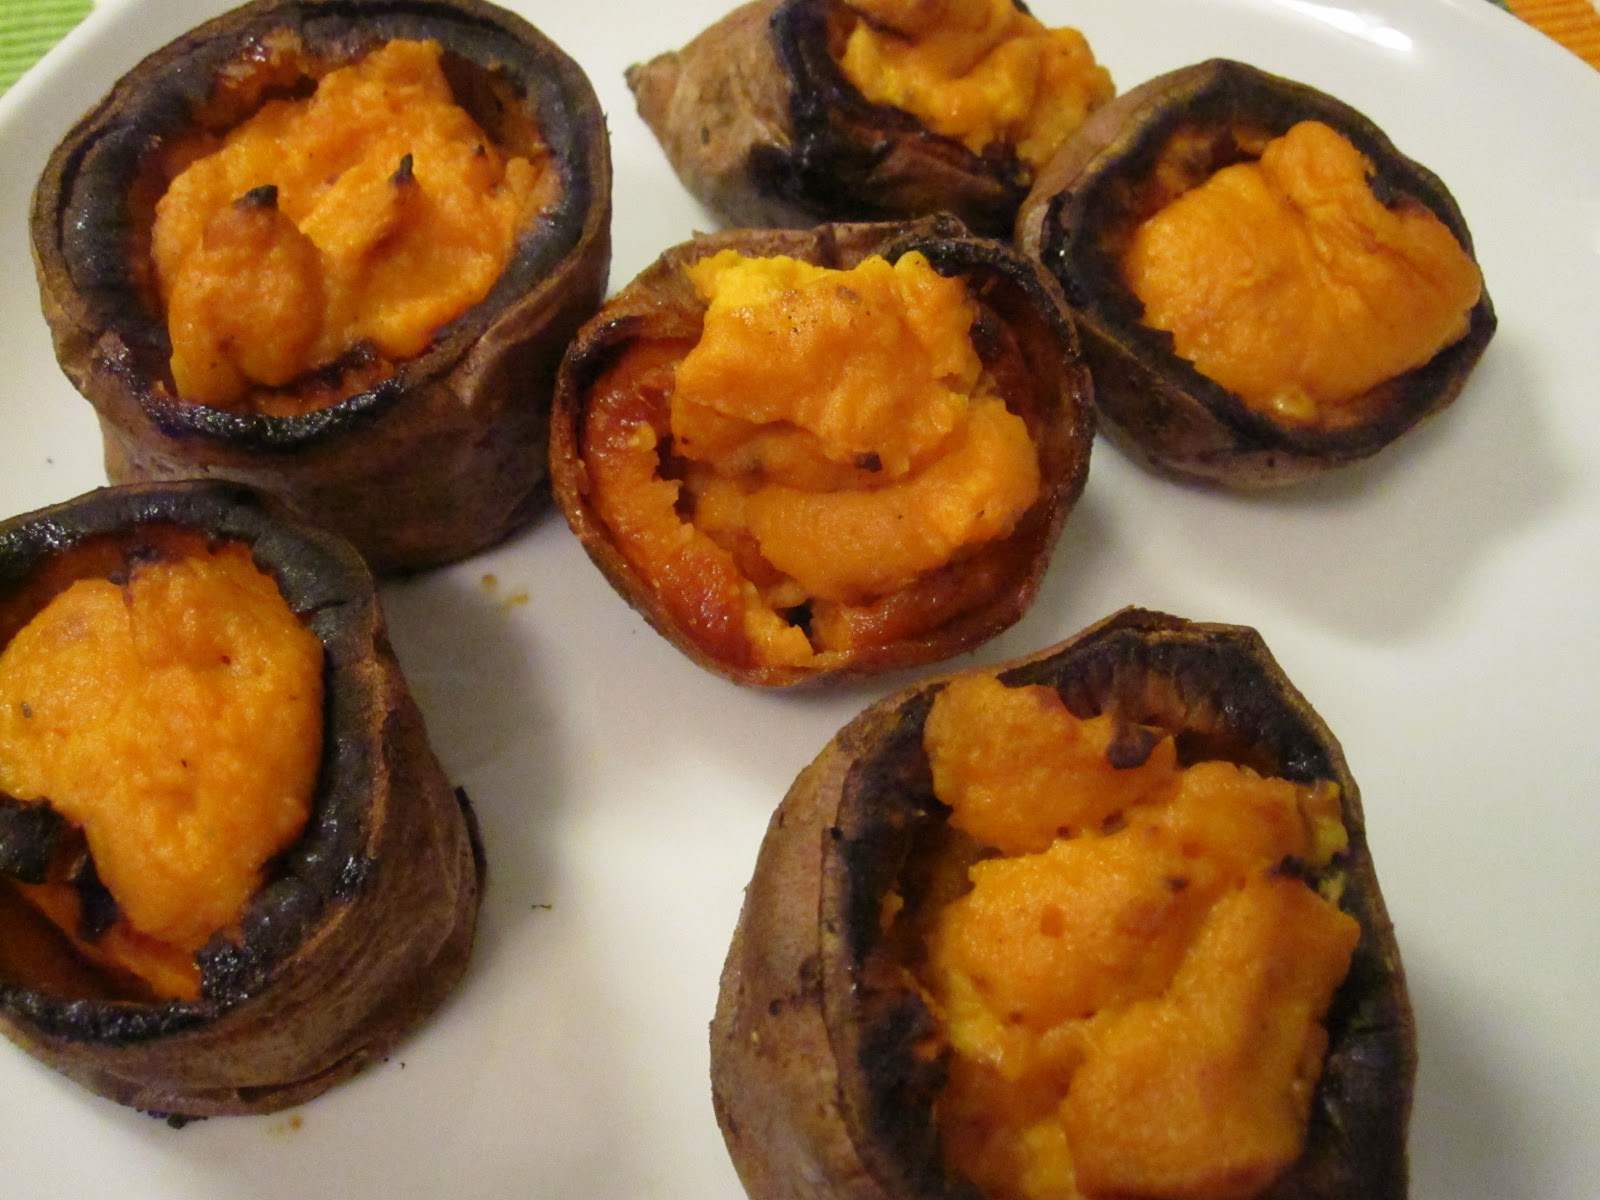 ... : Twice-Baked Sweet Potato Cups with Sour Cream, Chipotle, and Lime